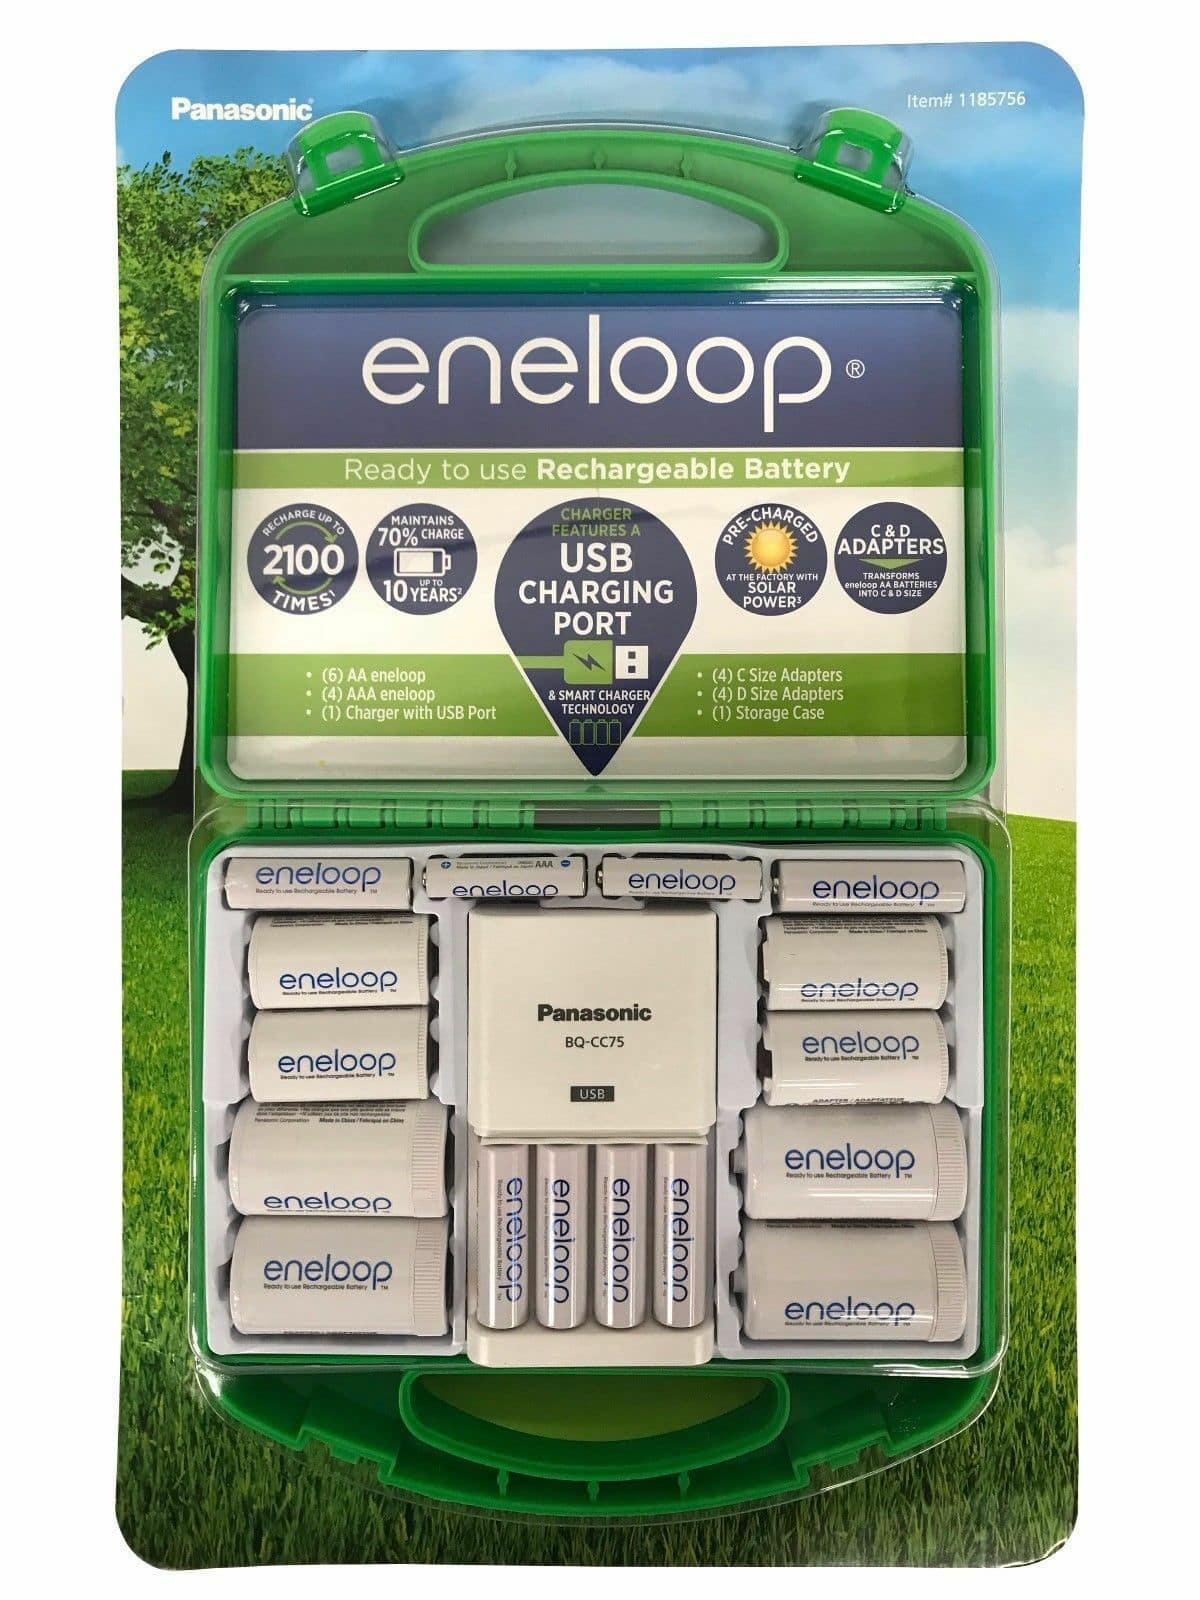 Eneloop Starter Pack: 6 - AA, 4 - AAA, Charger, C & D Size